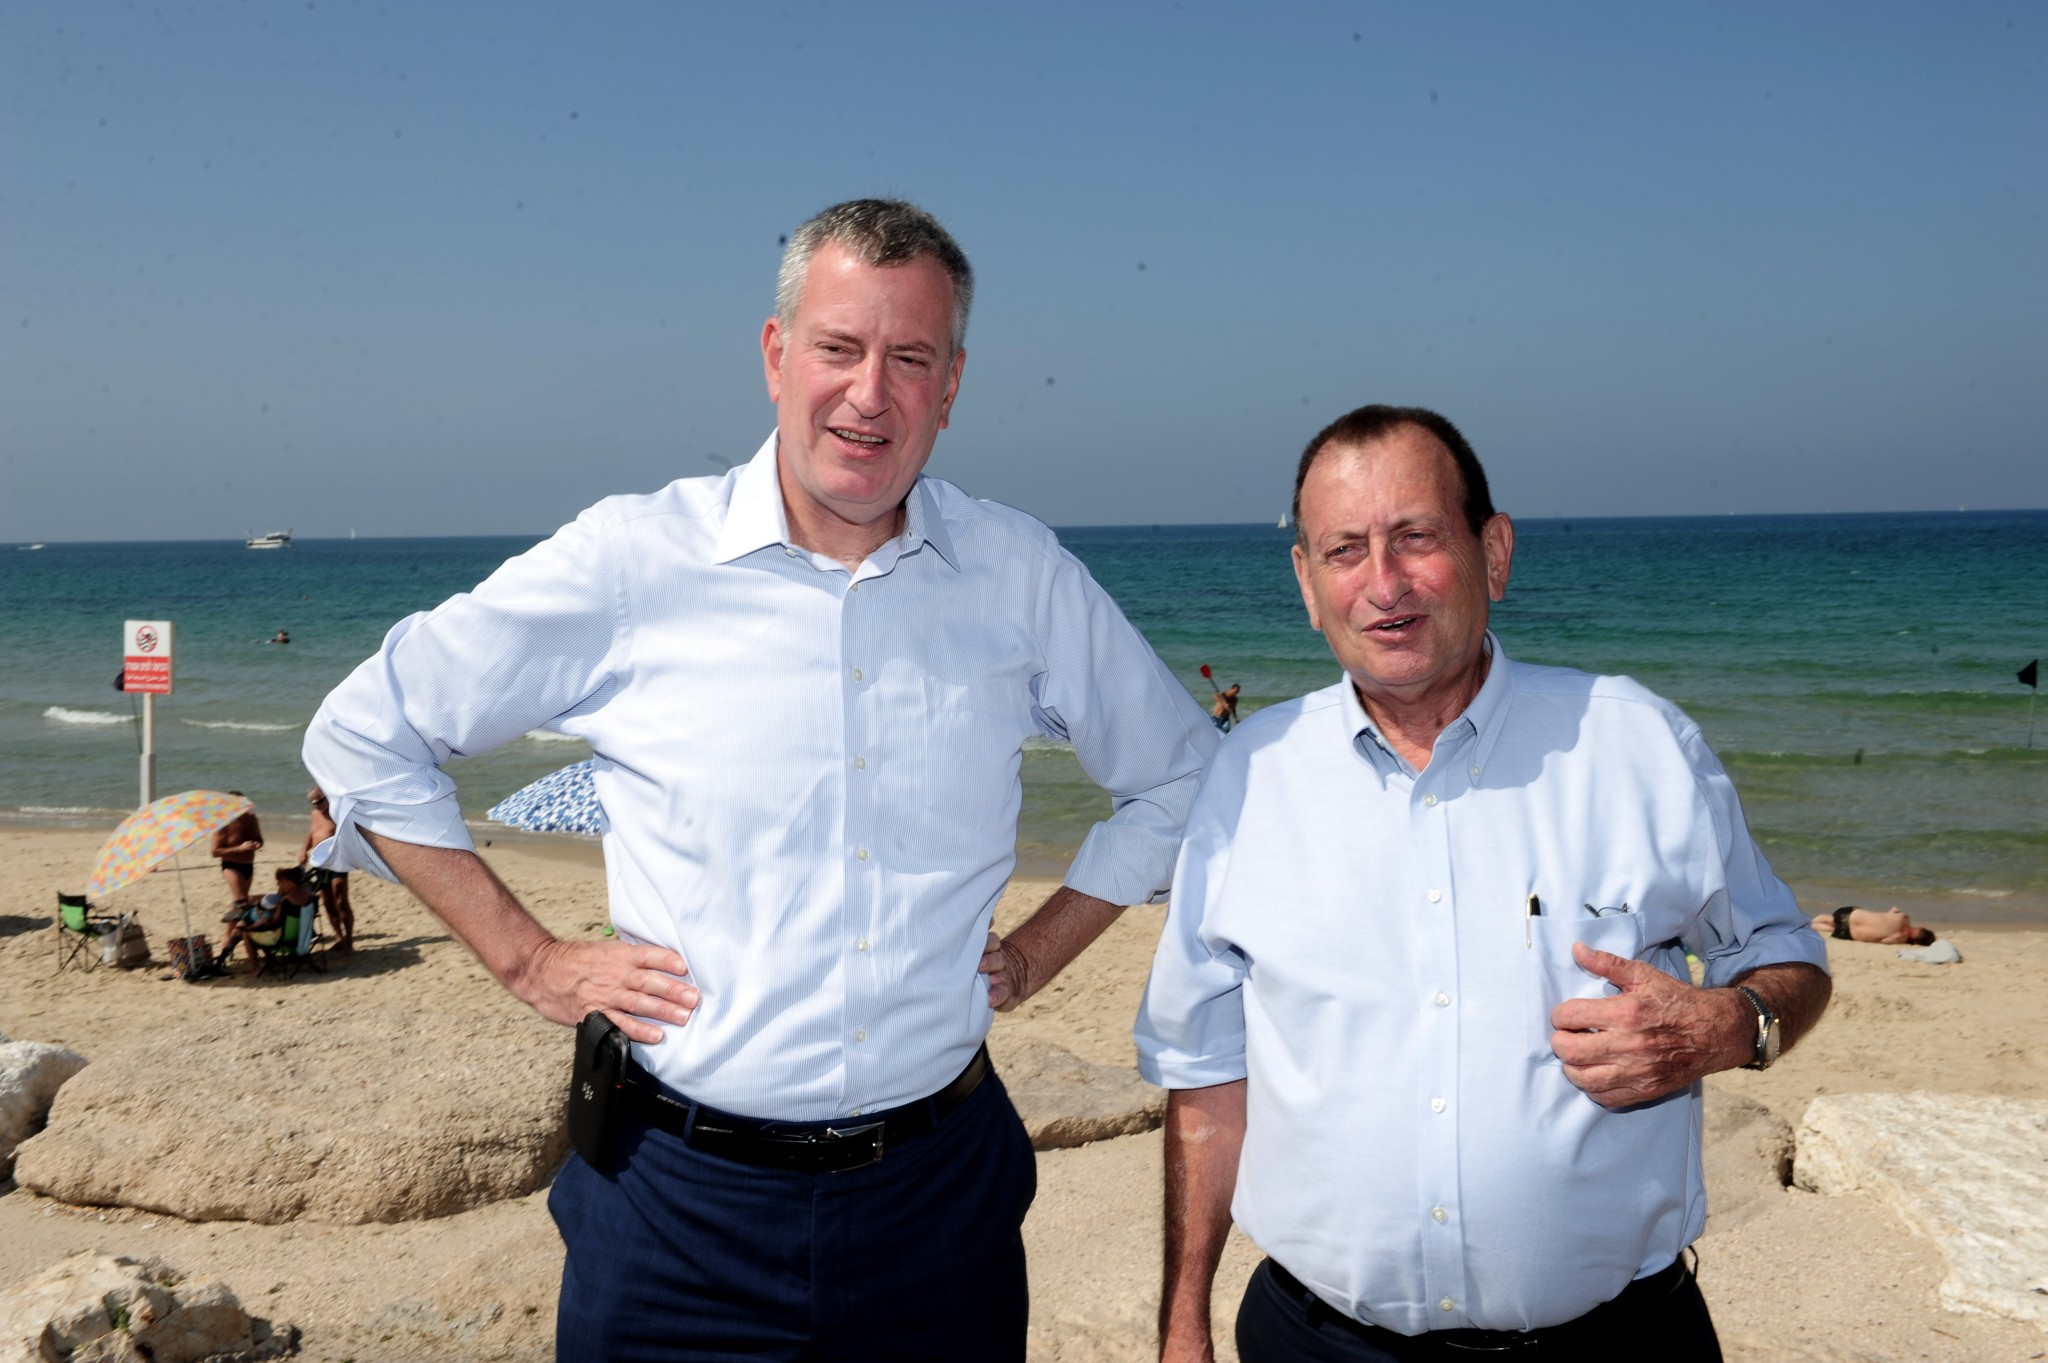 Ron Huldai, Mayor of Tel Aviv-Yafo, hosts Bill De Blasio, Mayor of New York City. Photo by Kfir Sivan